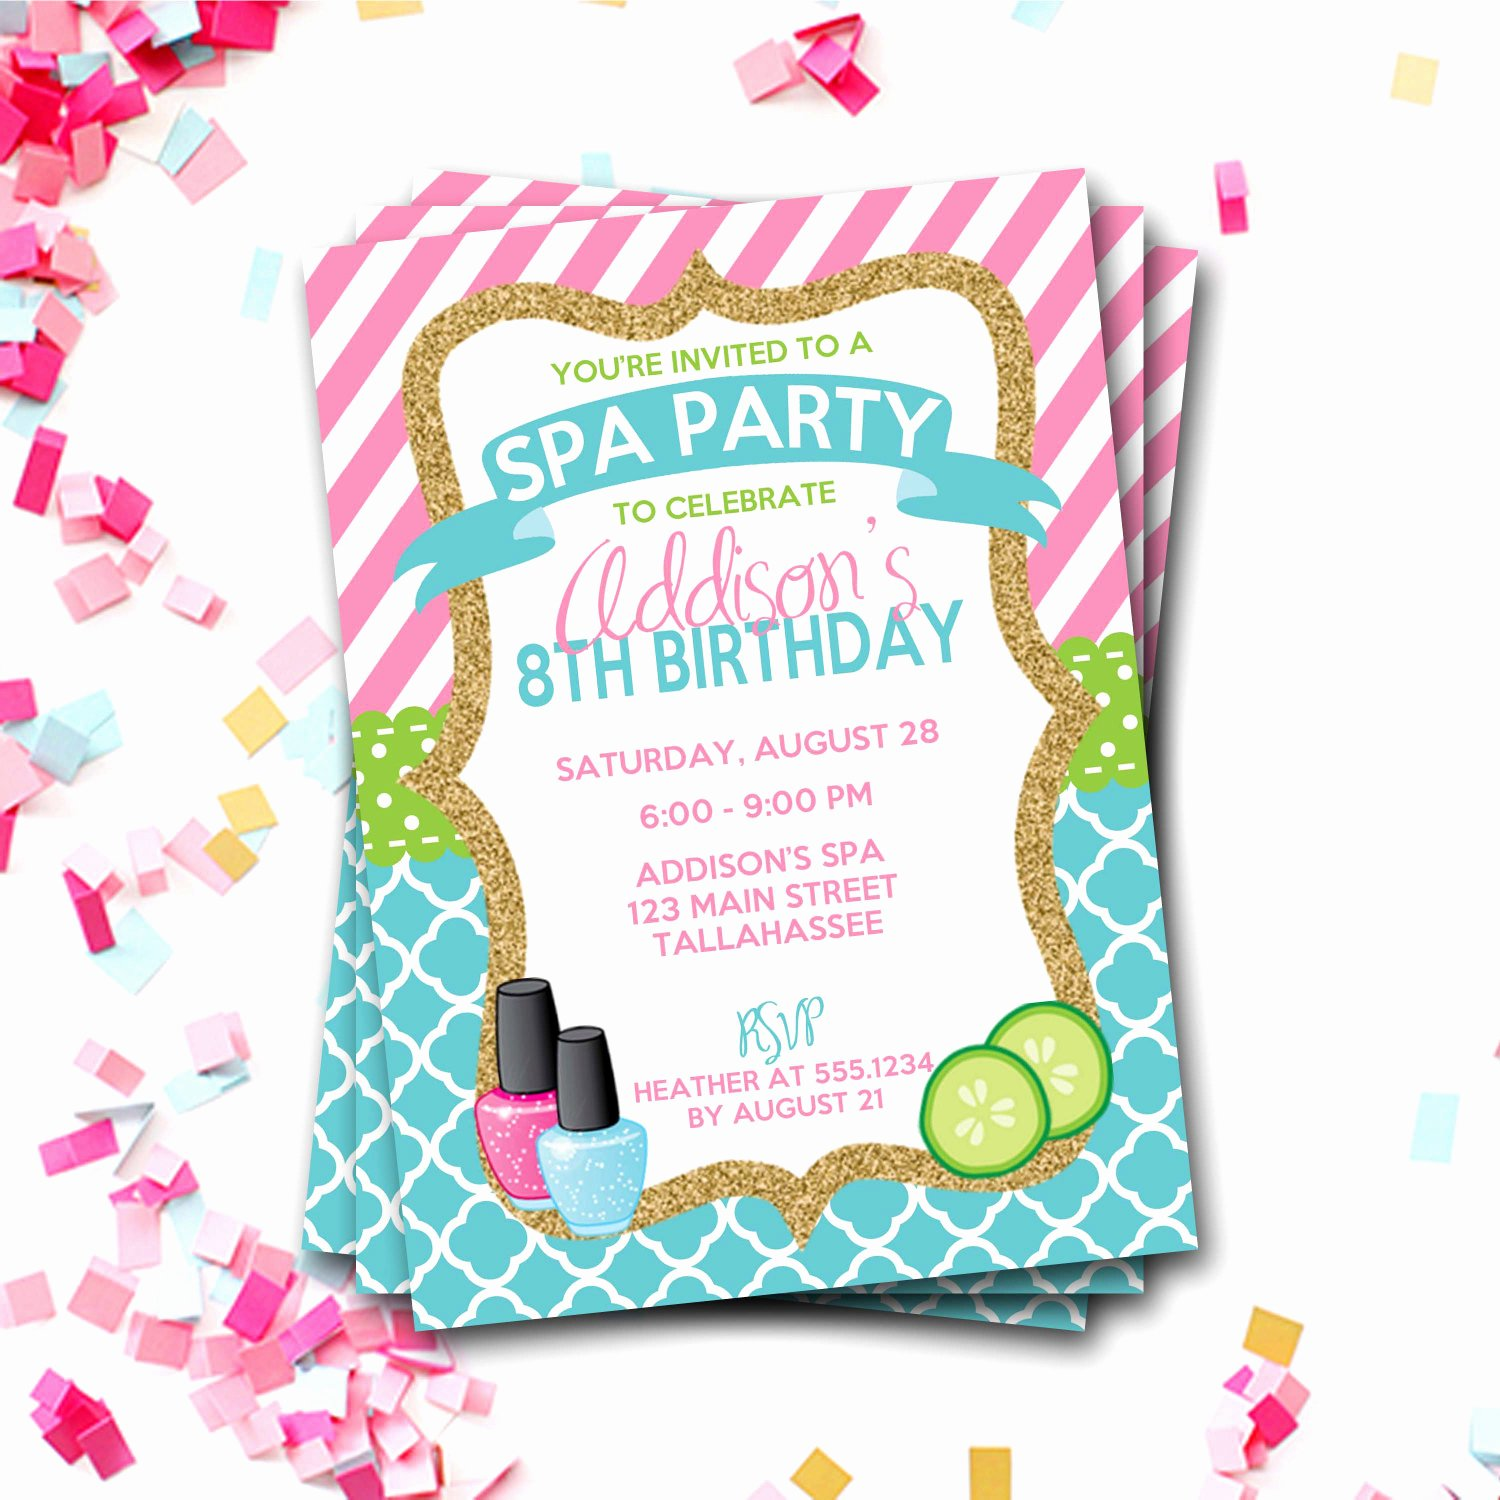 Spa Birthday Party Invitations Elegant Spa Birthday Invitation Spa Party Invitation Sleepover